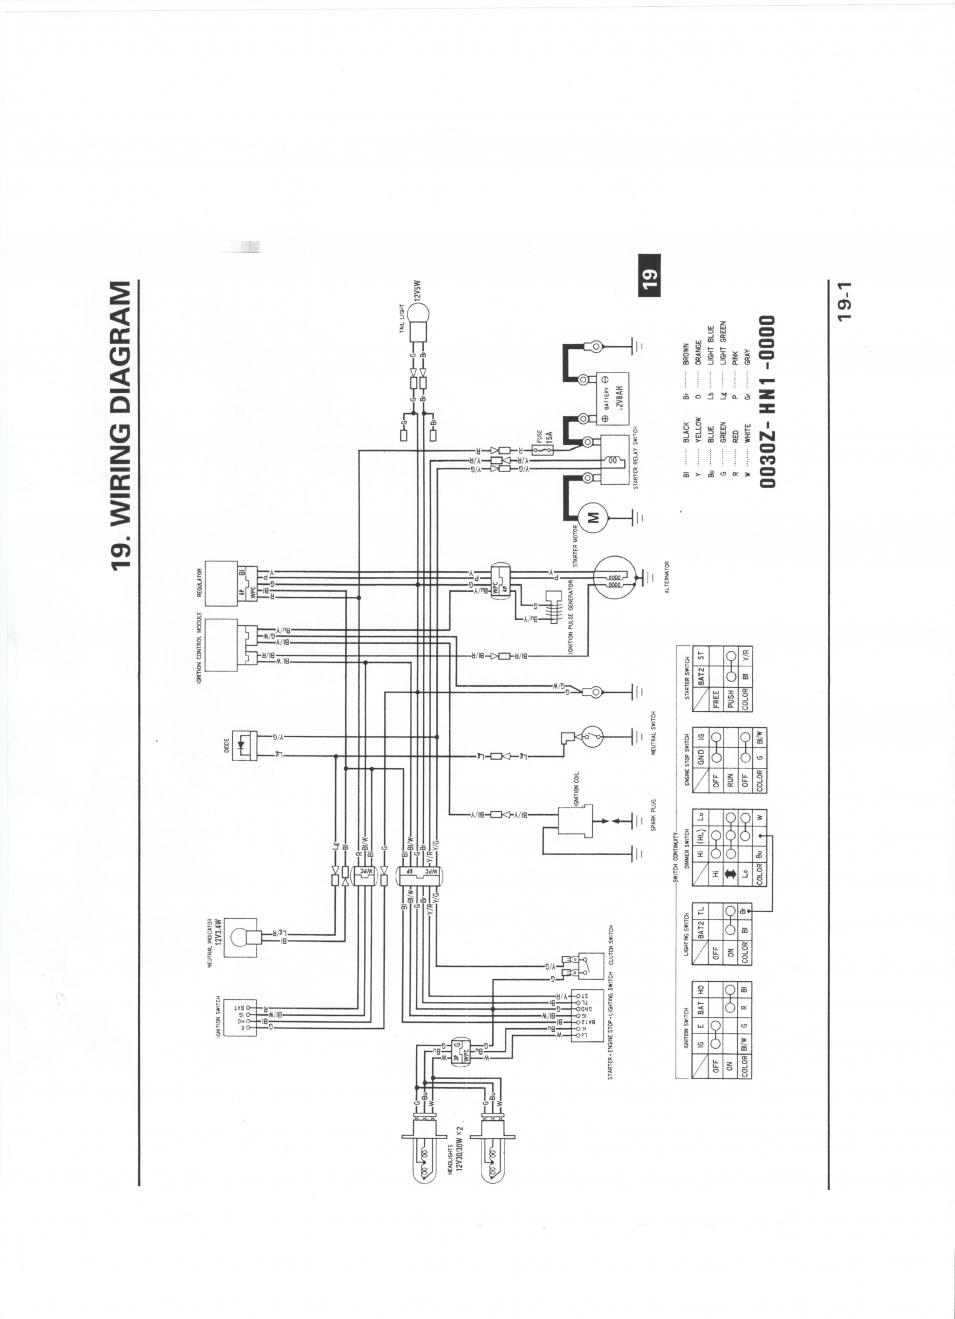 medium resolution of honda 400ex ignition wiring diagram wiring diagram toolboxhonda 400ex wiring pdf wiring diagrams konsult 02 honda